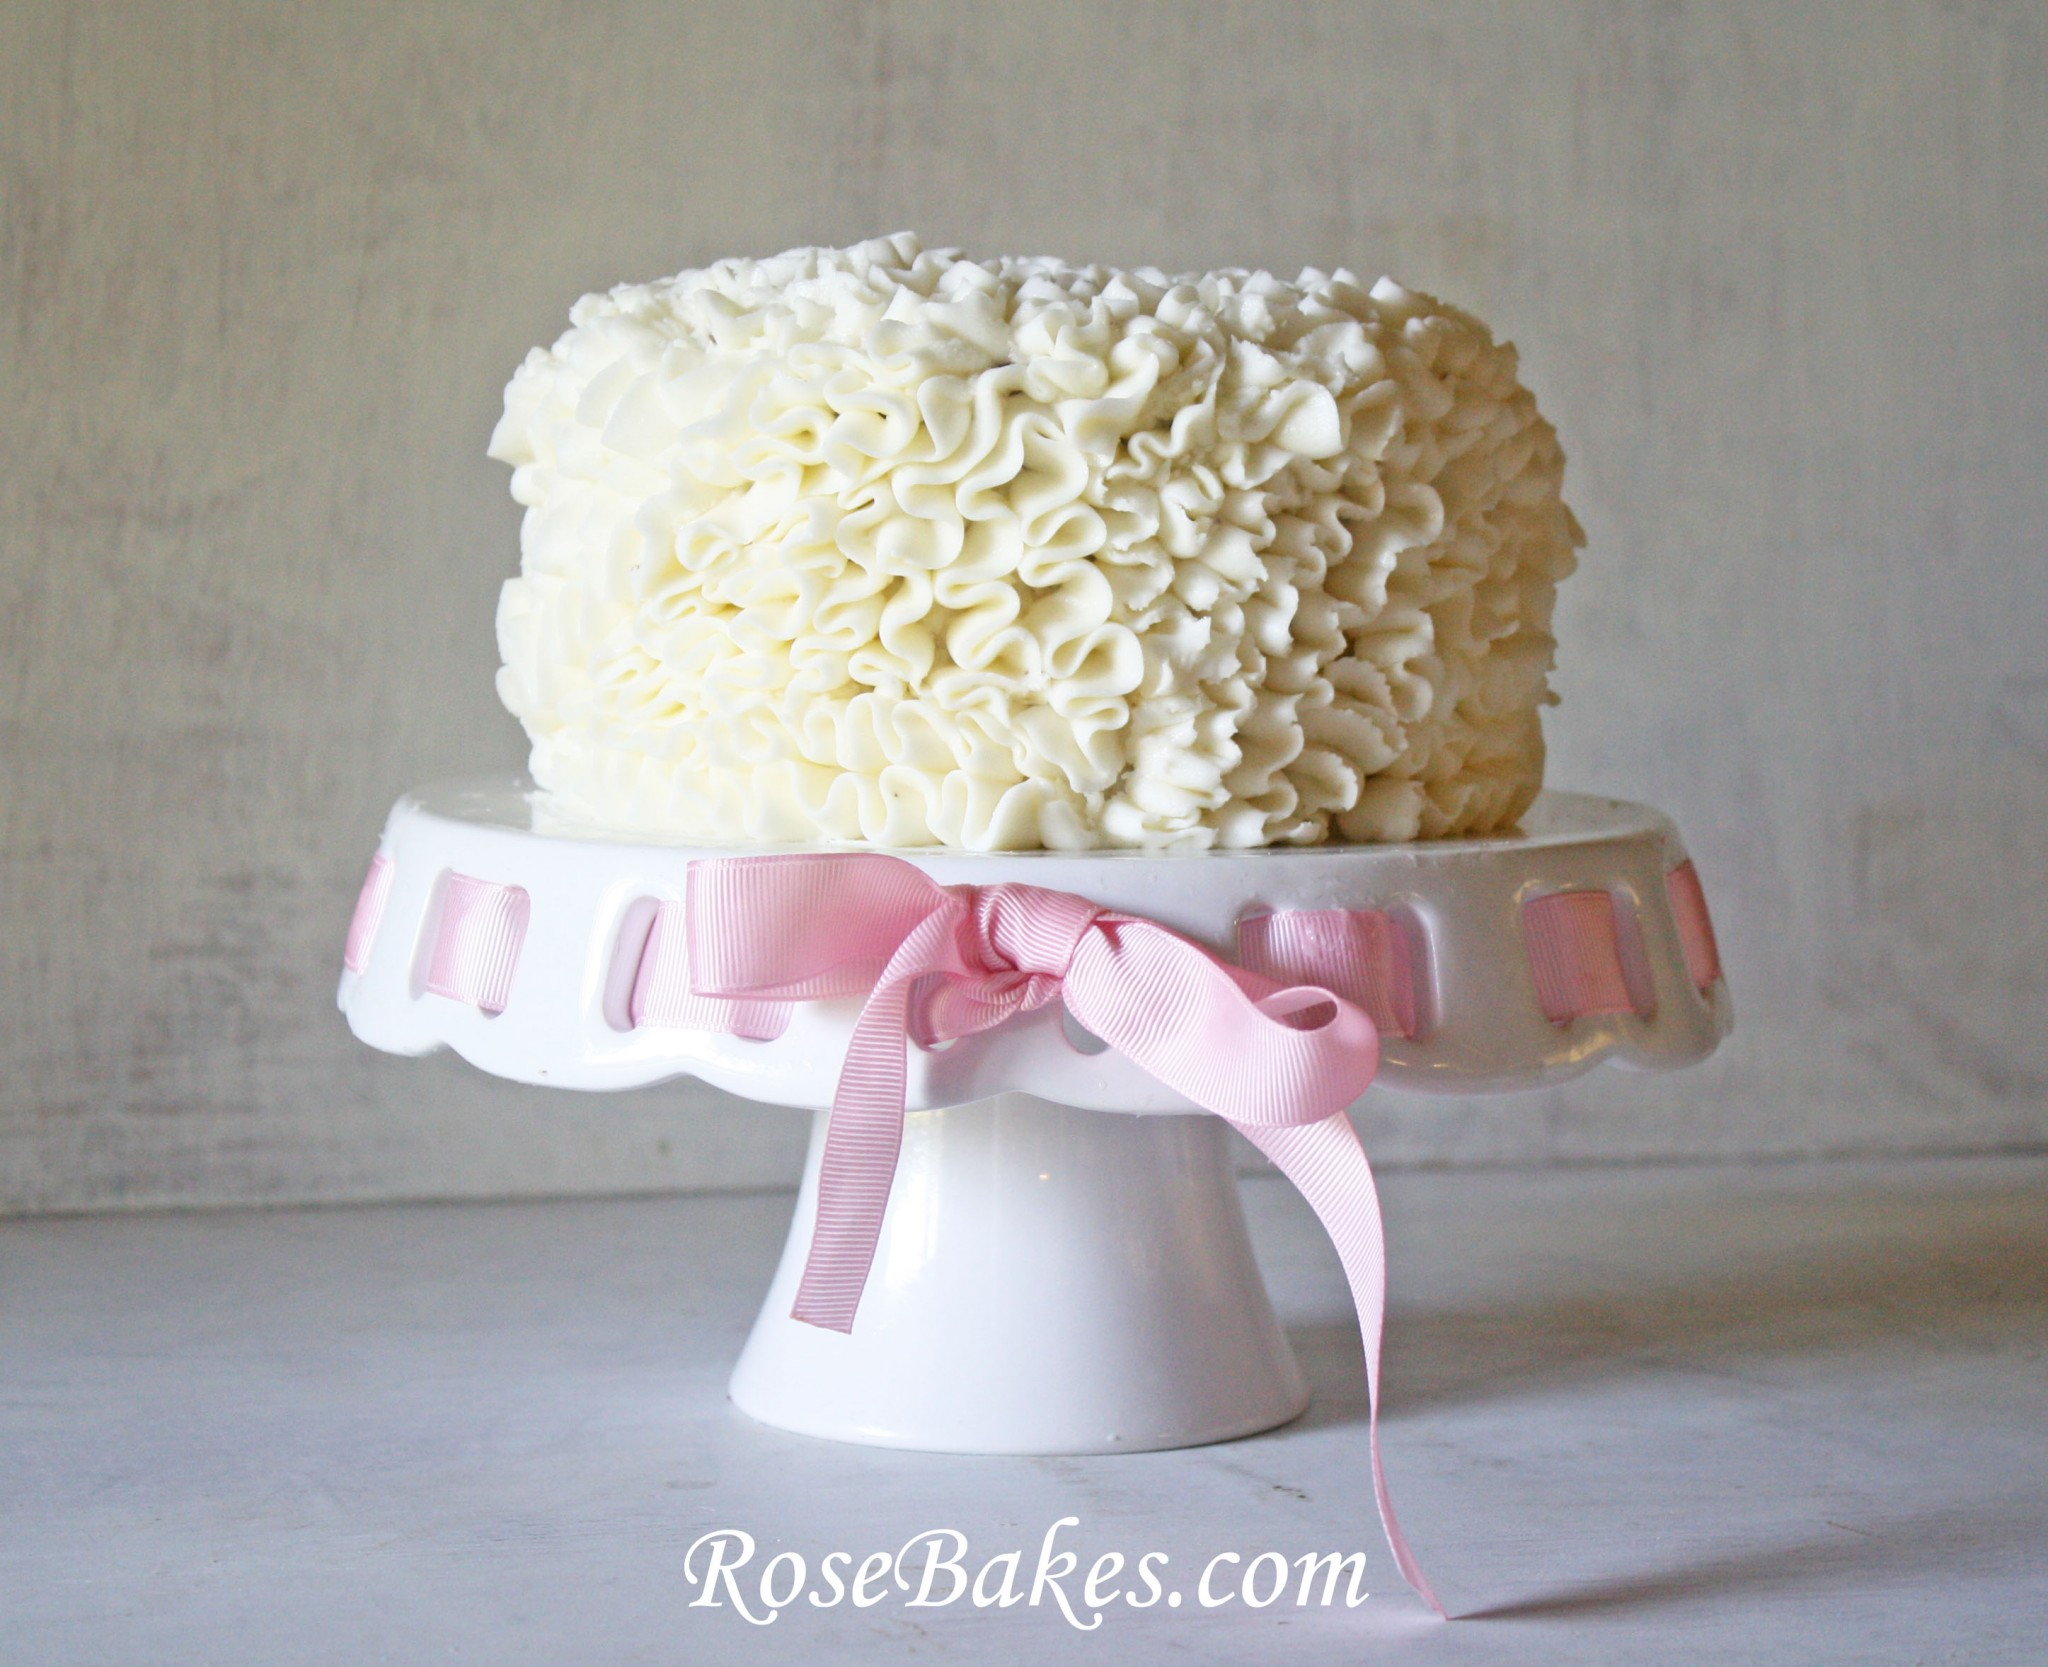 Buttercream Ruffle Cake Decorating : Messy Ruffles Cake Decorating Video Tutorial